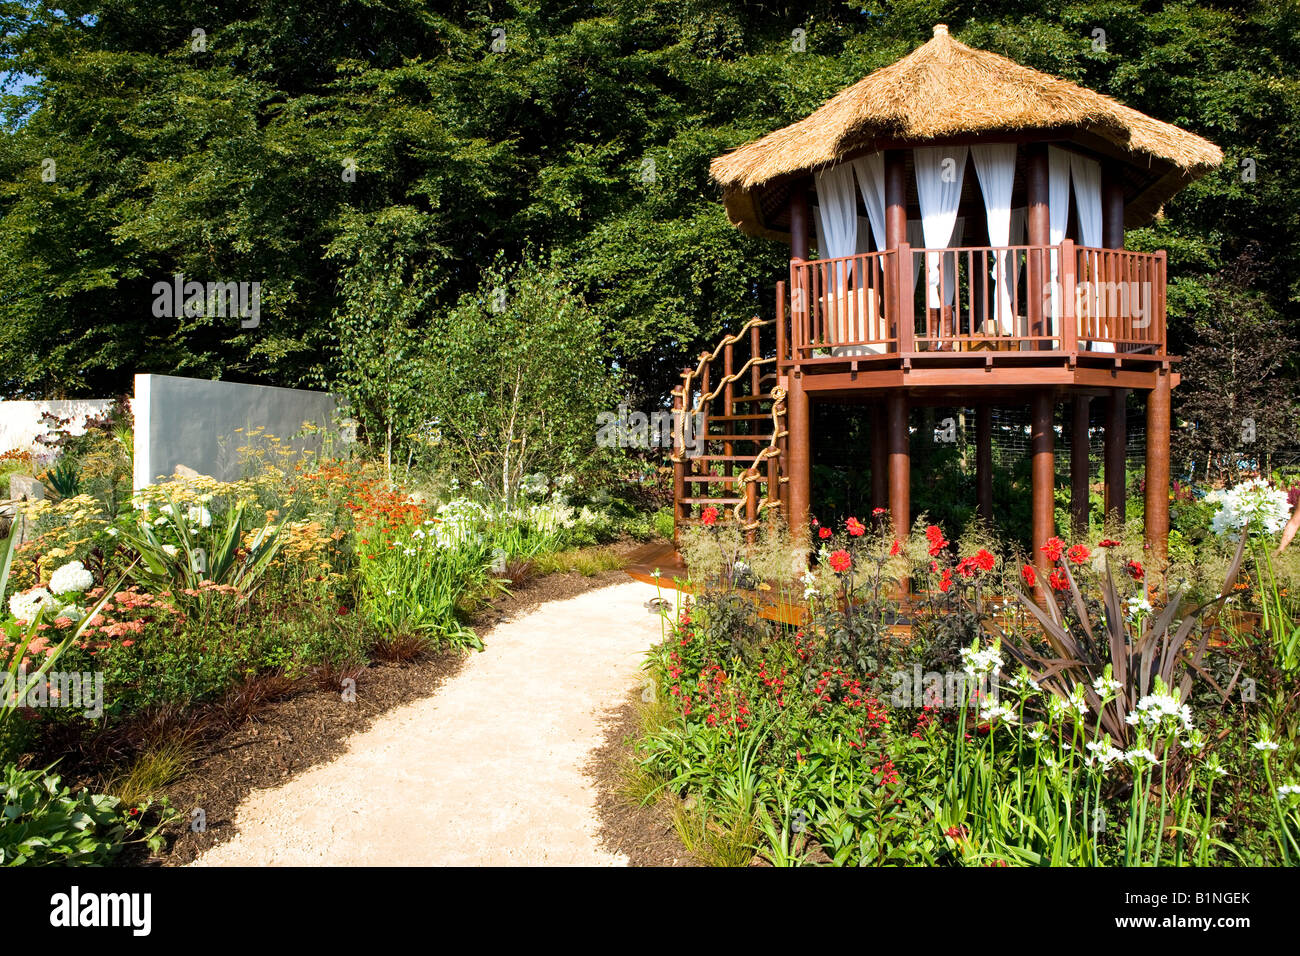 Summer house raised on stilts in a large garden stock photo royalty free image 18298971 alamy - Summer projects house garden ...